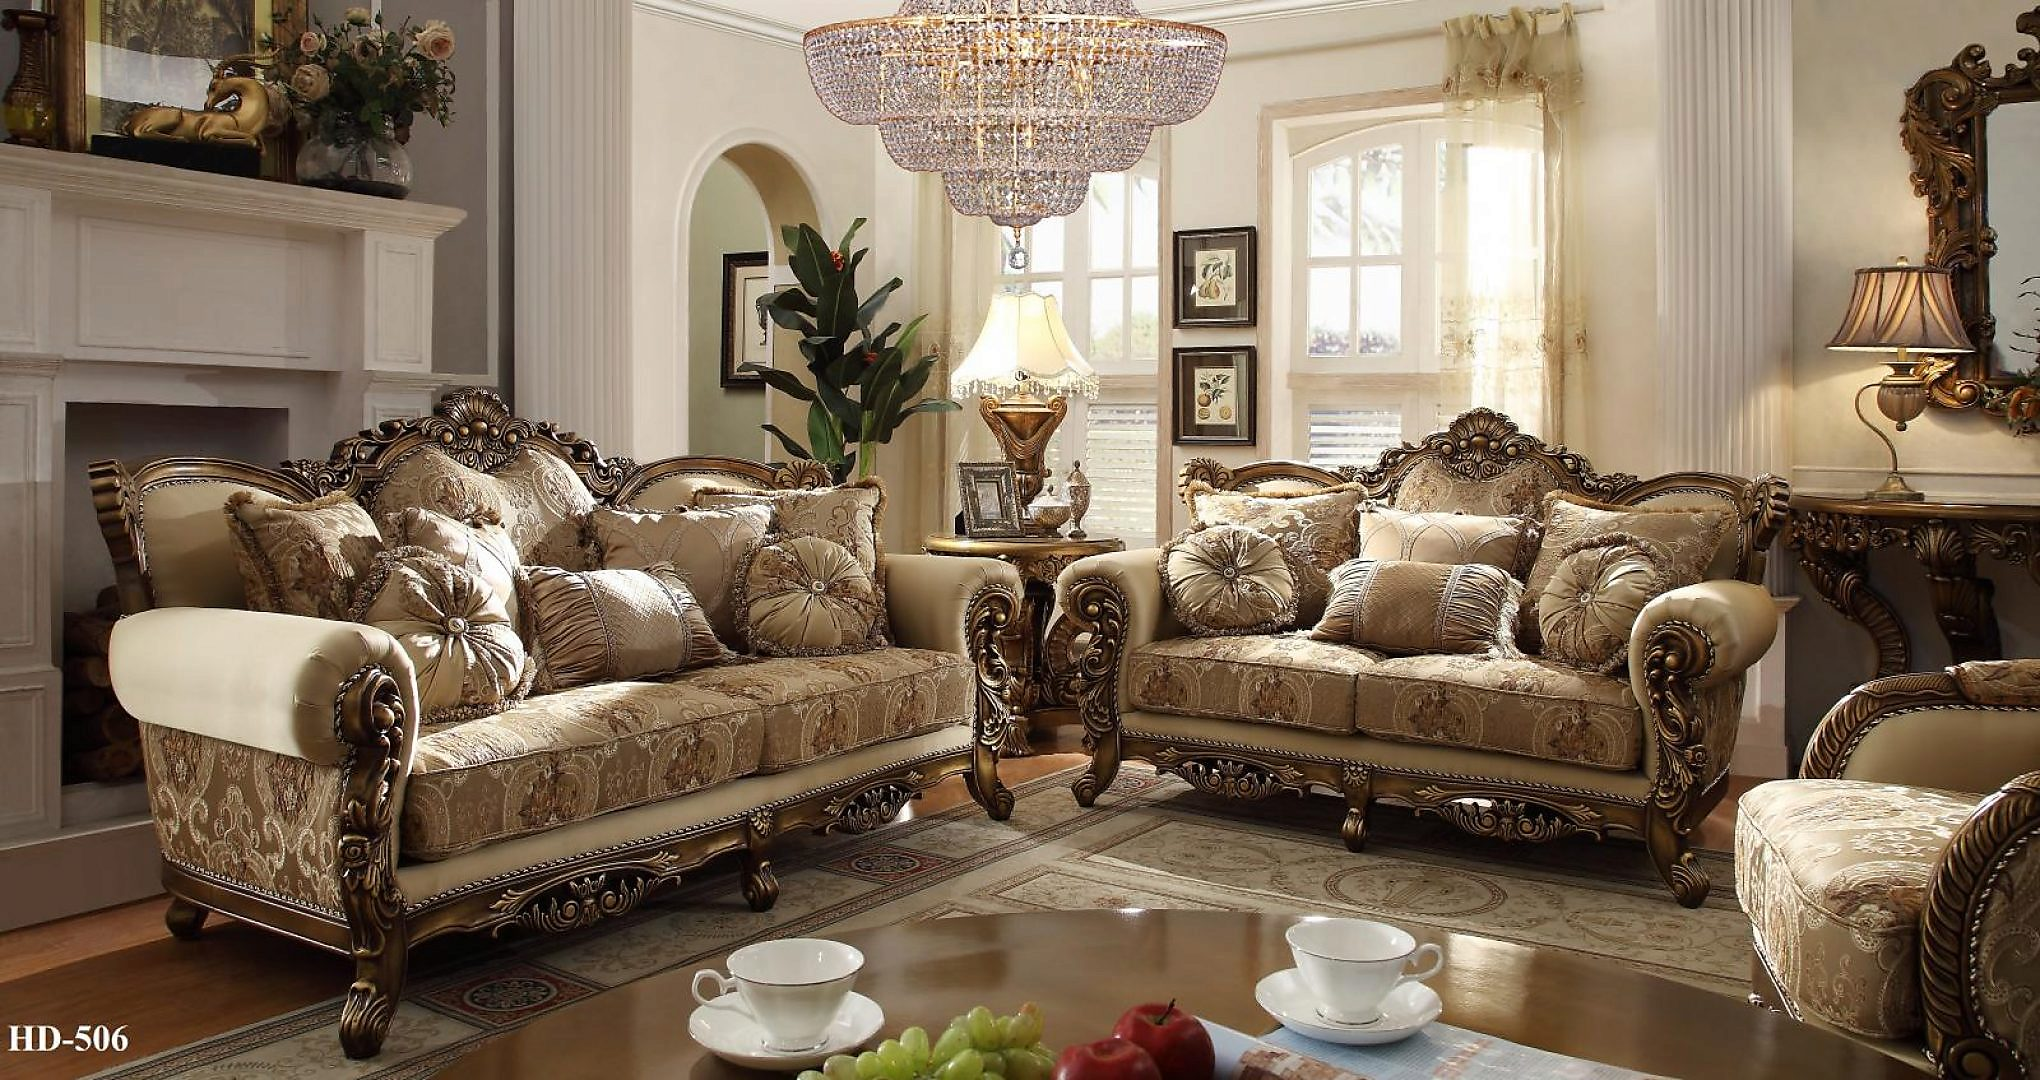 Traditional Luxury Gold HD-506-SLC Sofa Set in Gold by Homey Design